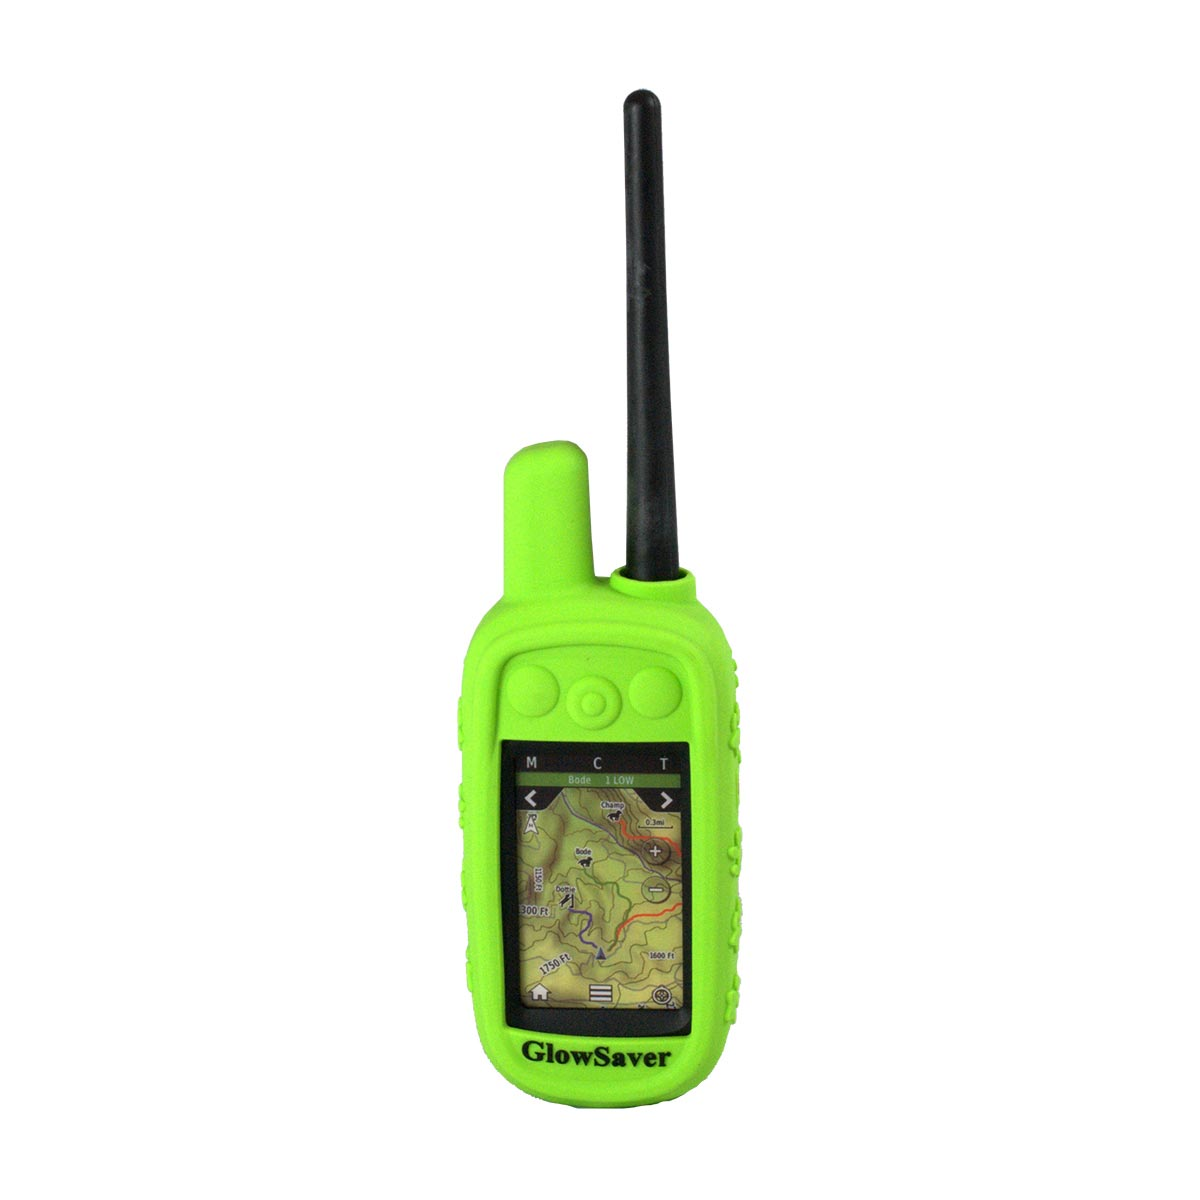 The Buzzard's Roost GlowSaver Case for Alpha with Screen Protectors Bright Green Dog GPS Tracking - London the Local